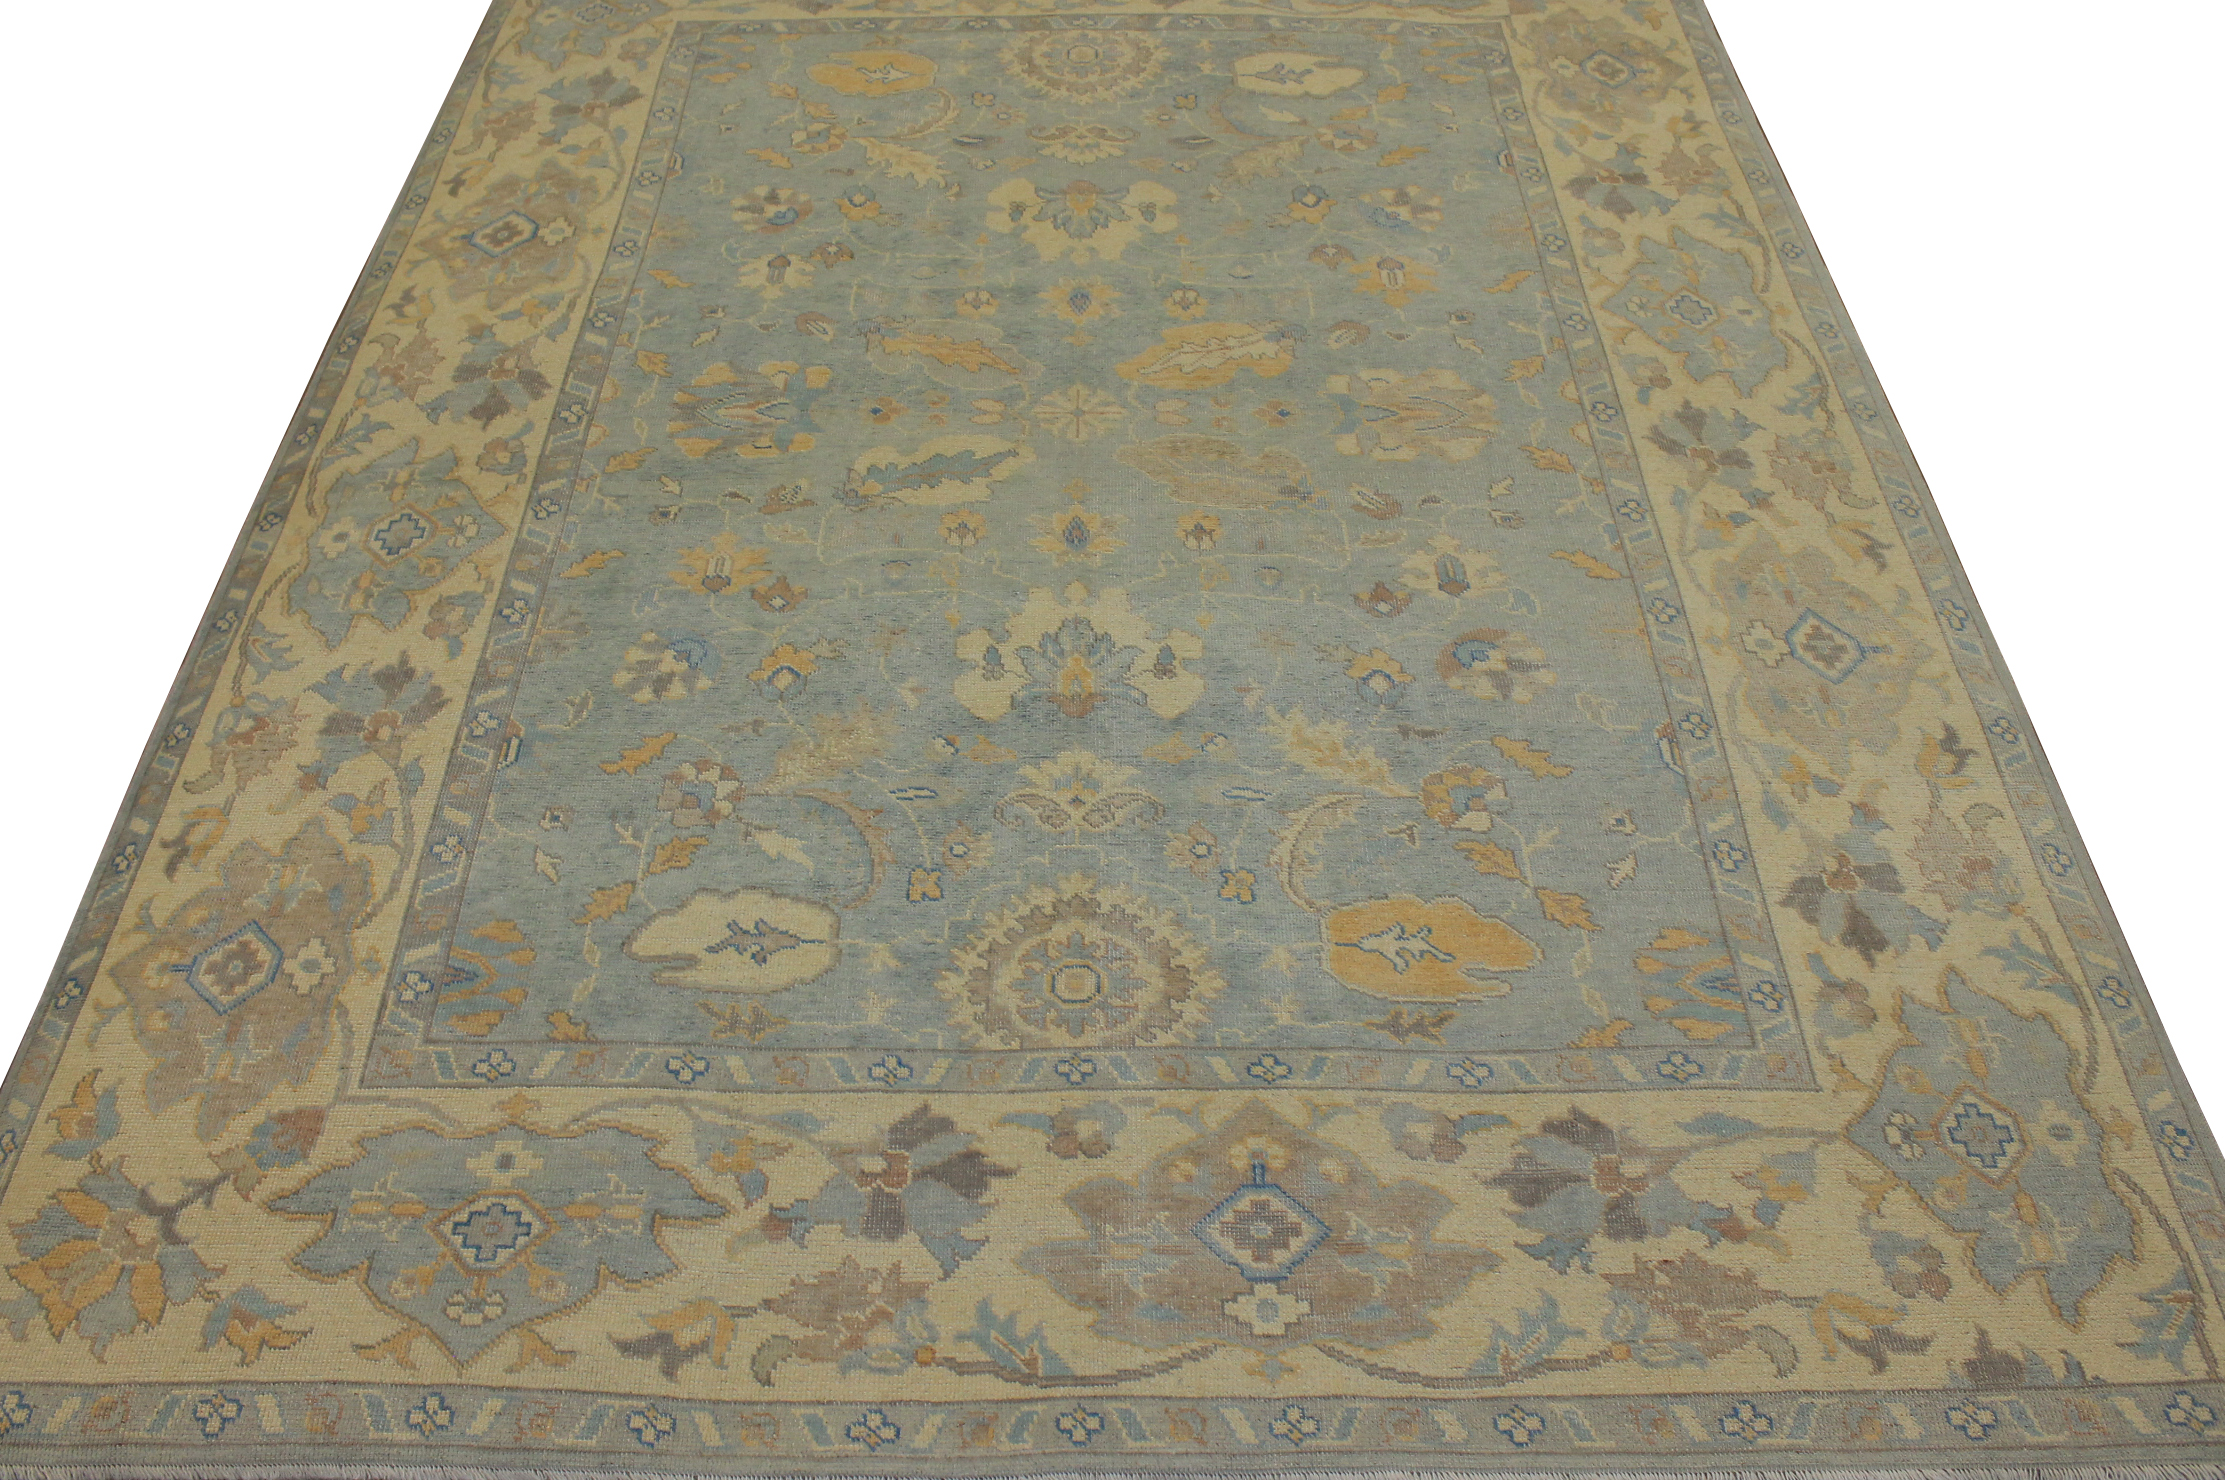 9x12 Oushak Hand Knotted Wool Area Rug - MR16822